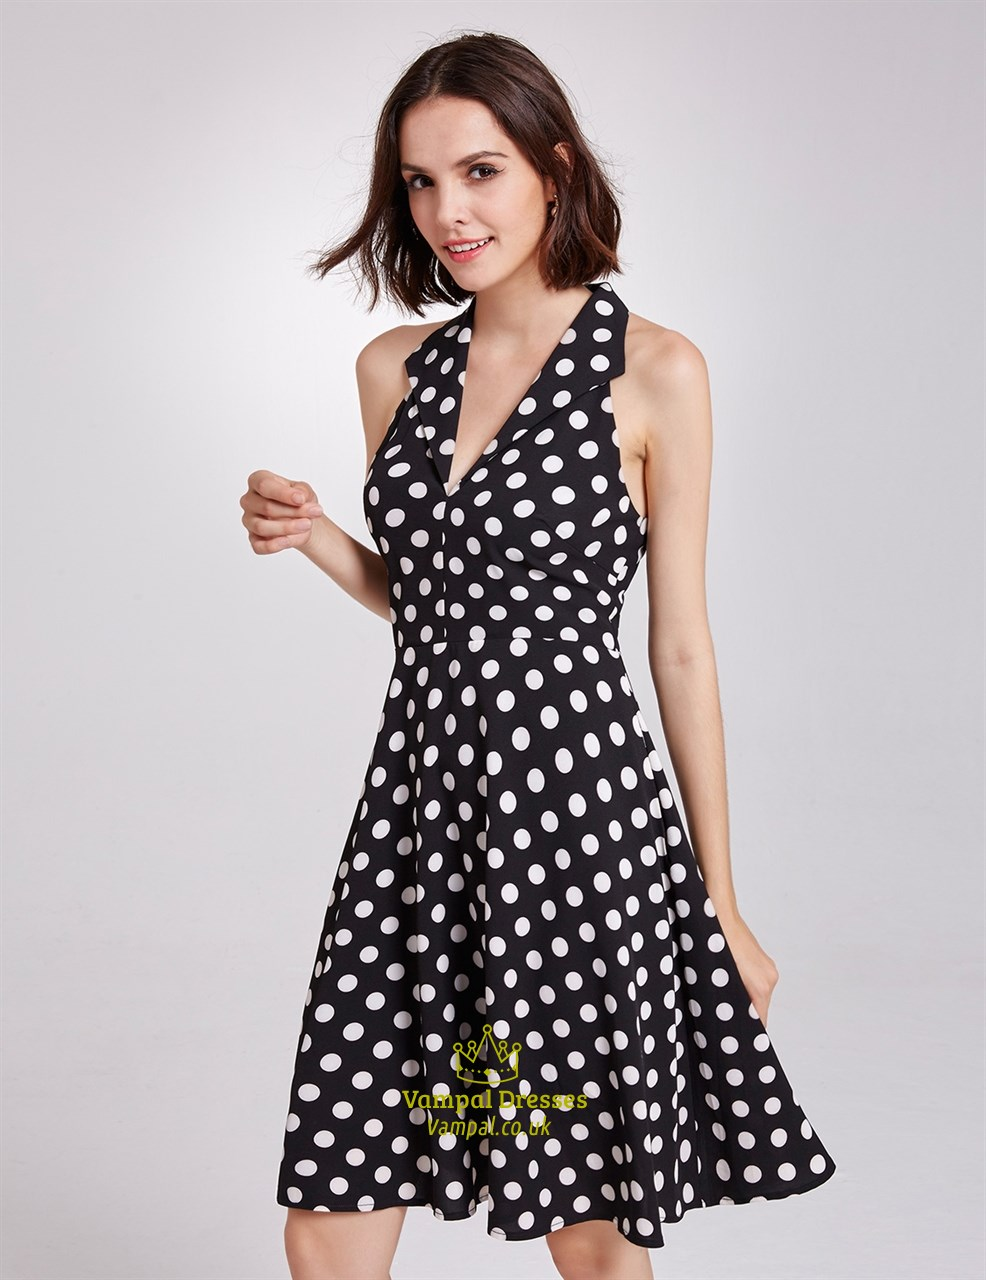 The sun is shining, so grab a latte and wander through the park in the Lulus Afternoon Stroll Black Polka Dot Midi Dress! Dainty, white swiss dots embellish this woven frock with a sheer decolletage, and ruffled sleeveless bodice/5(69).